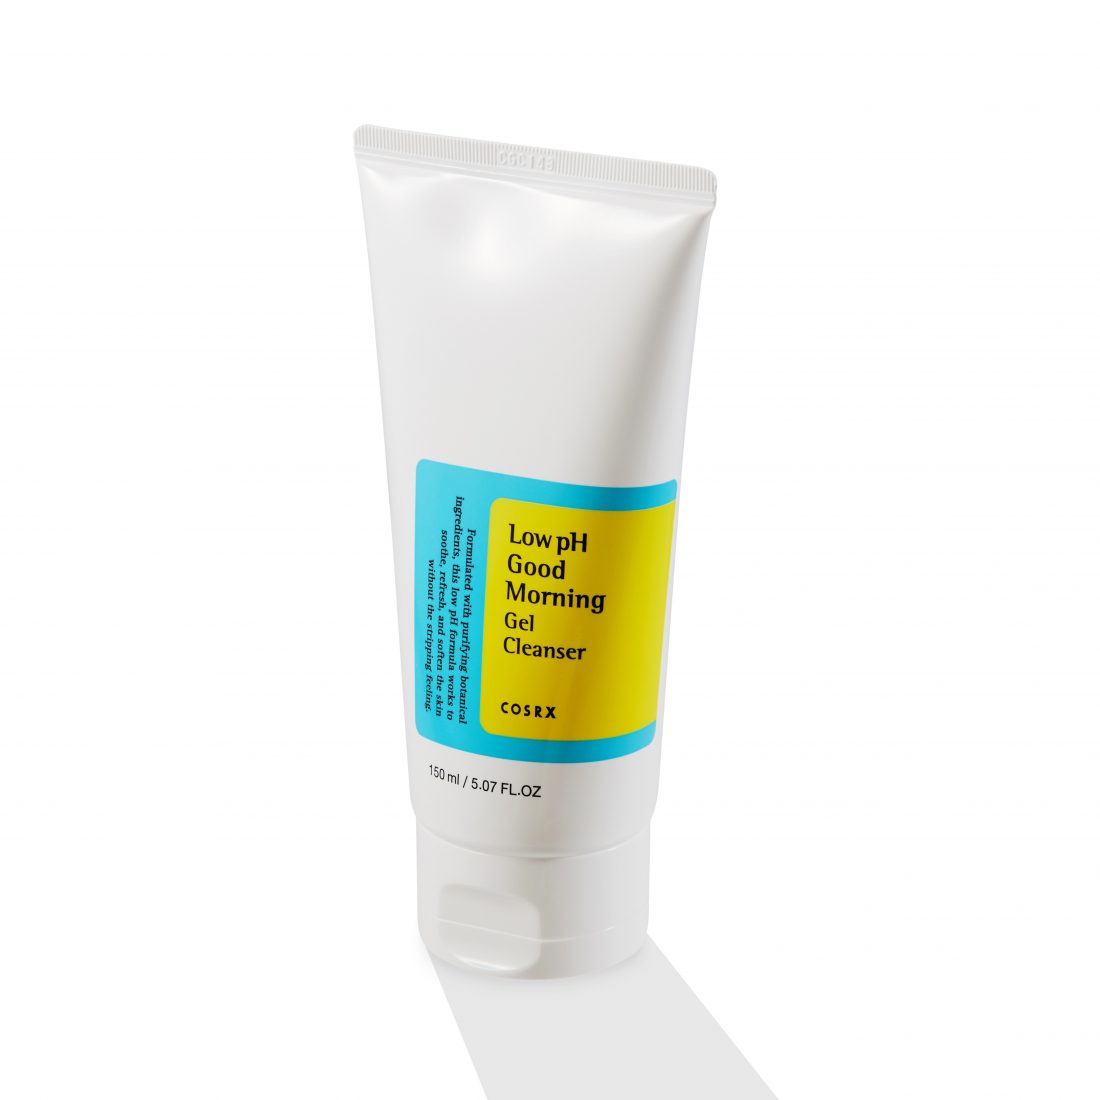 cosrx low pH good morning gel cleanser titled view